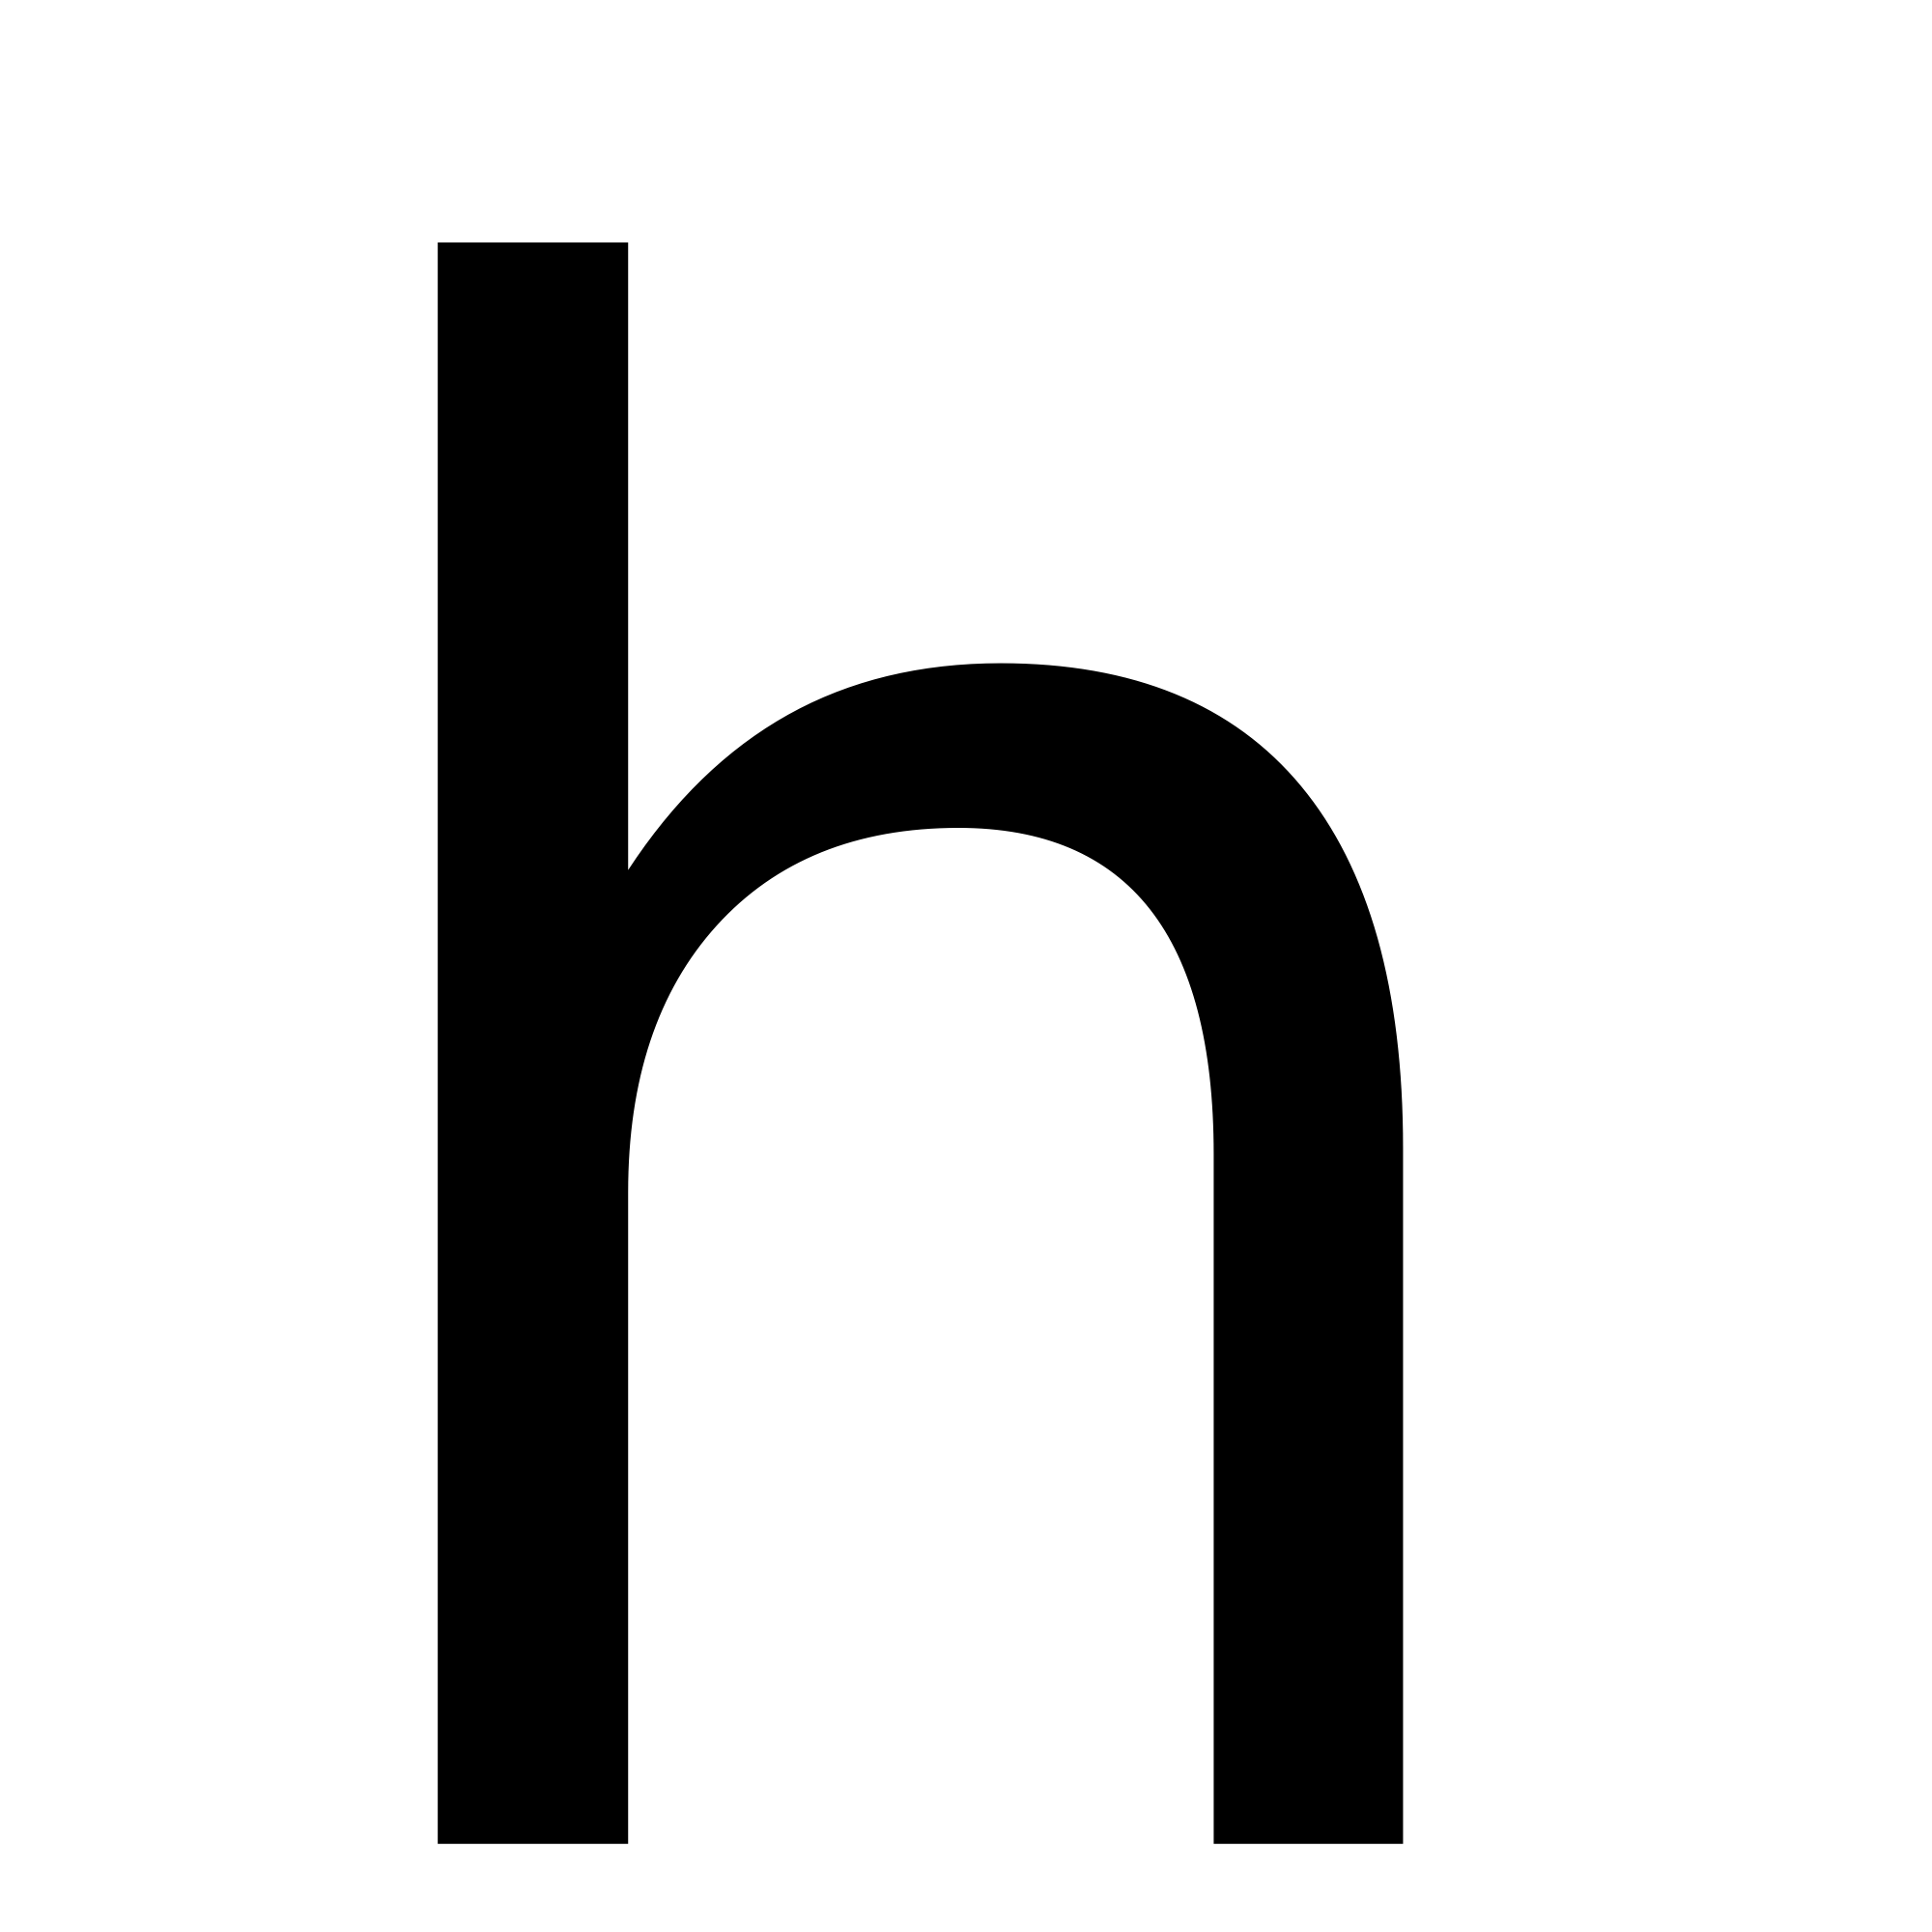 The letter h png. File svg wikimedia commons